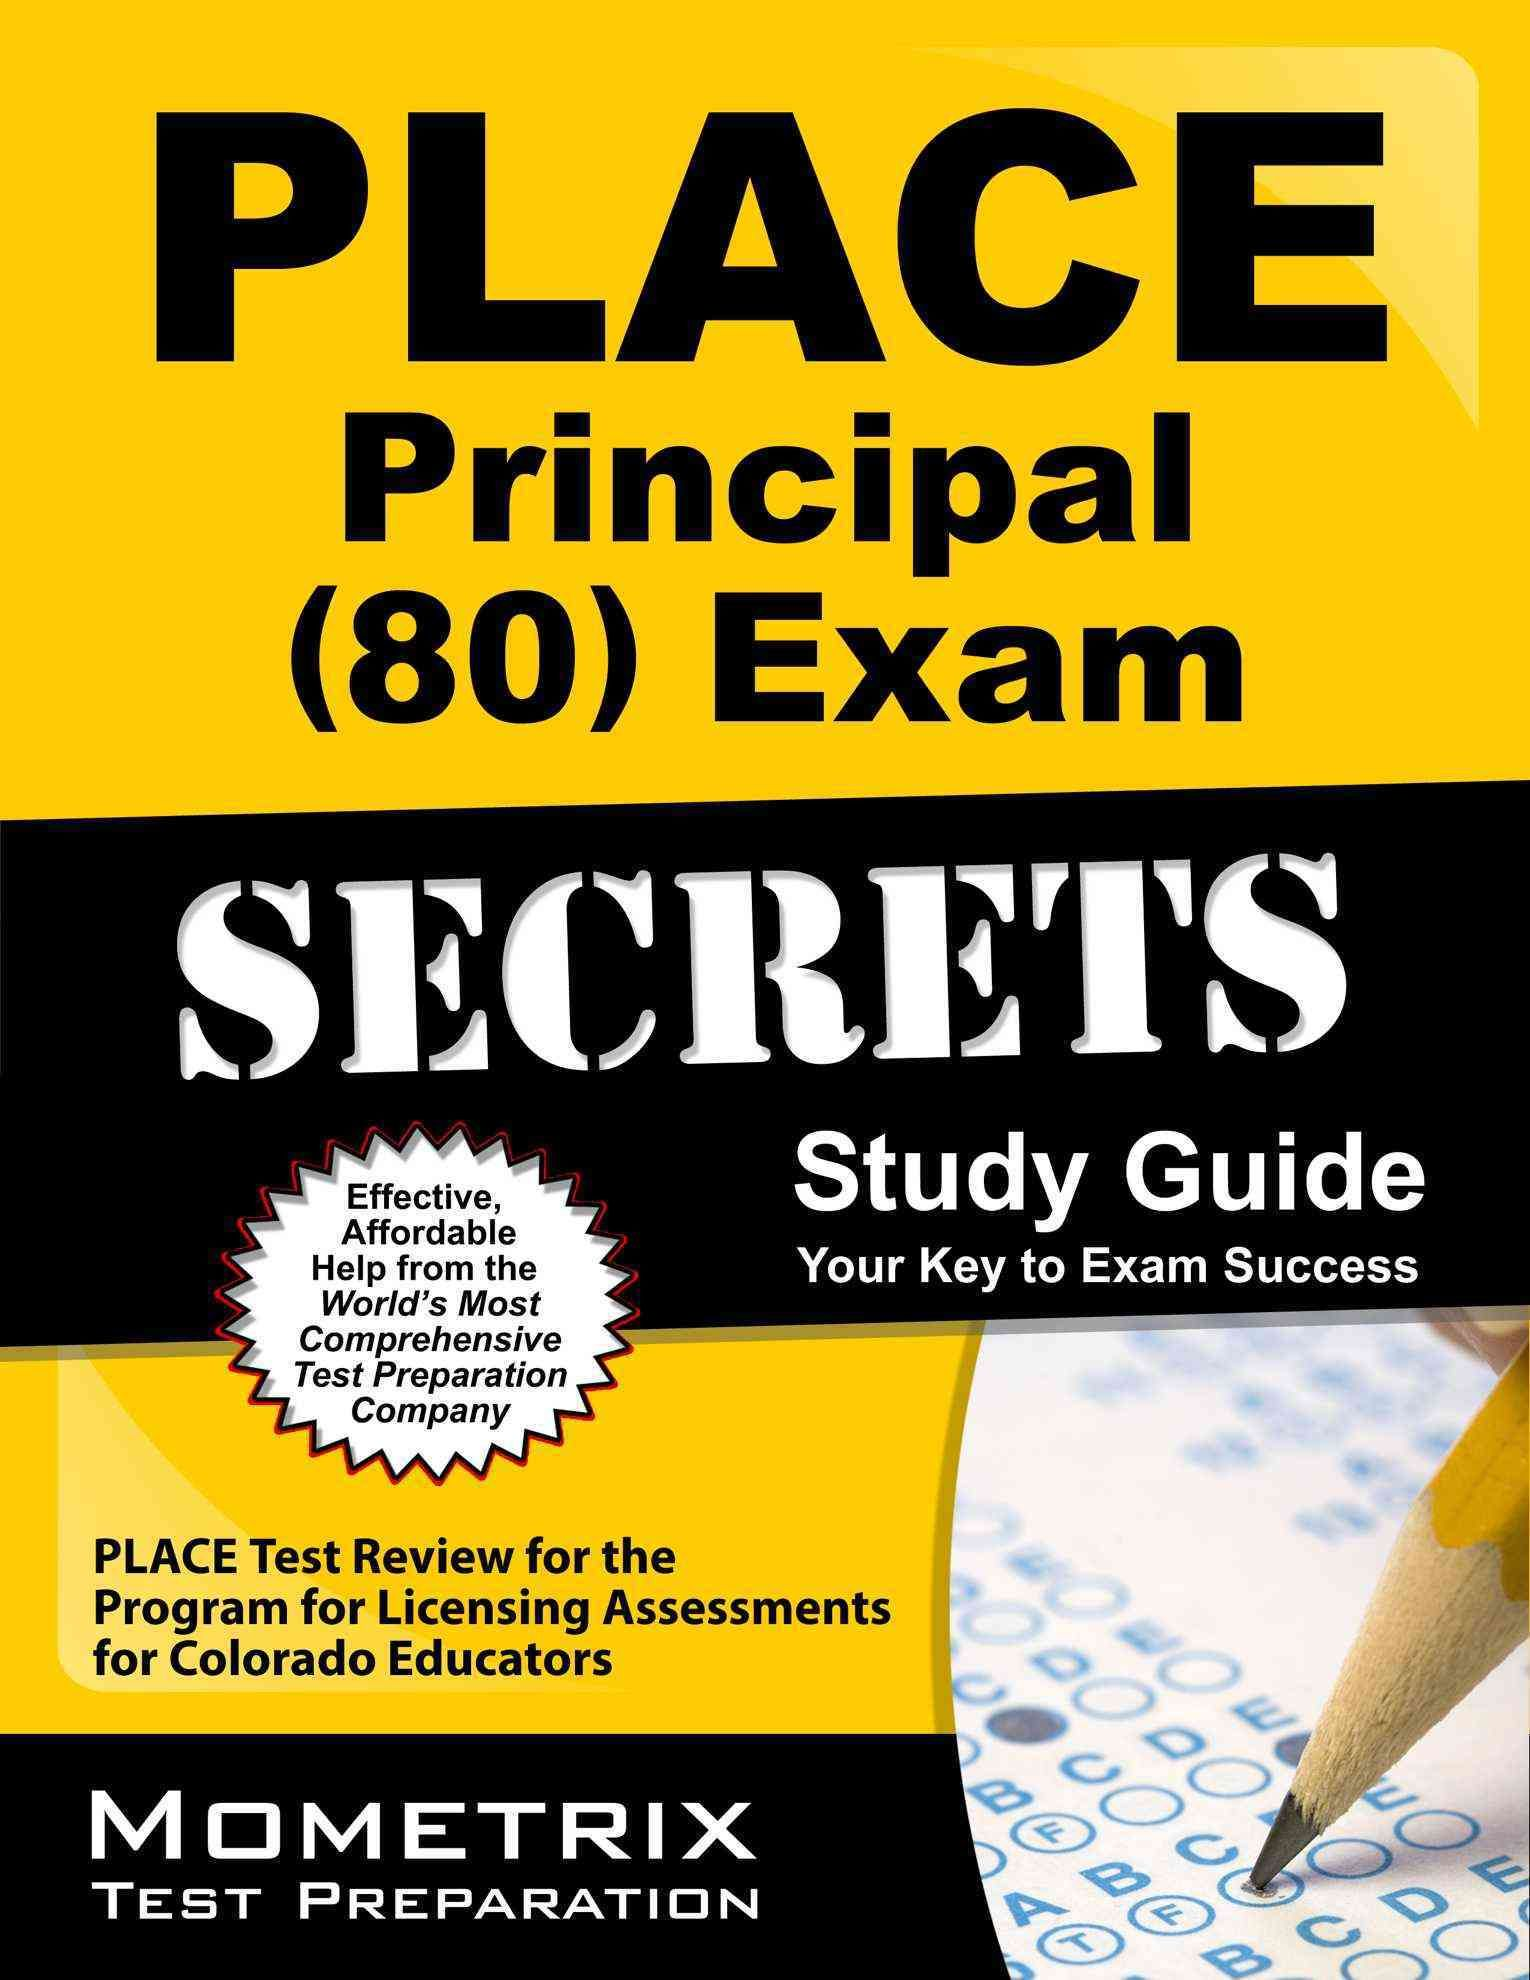 Place Principal 80 Exam Secrets Study Guide: Place Test Review for the Program for Licensing Assessments for Colo...